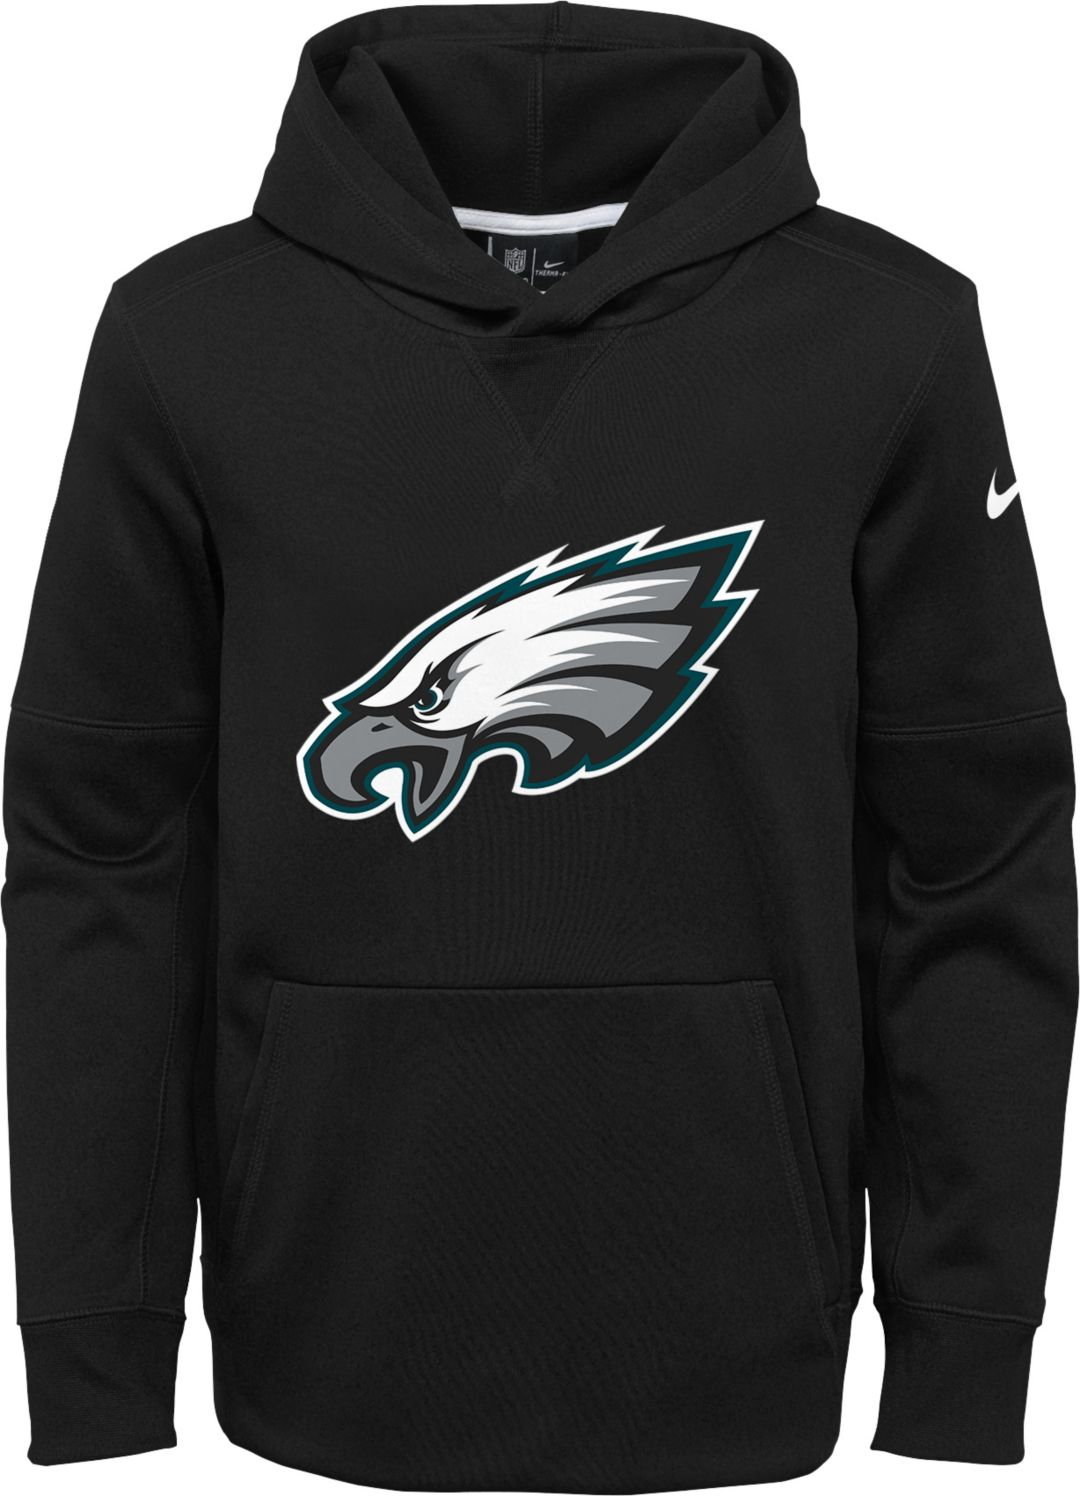 best sneakers b56b6 f2954 Nike Youth Philadelphia Eagles Logo Essential Black Hoodie